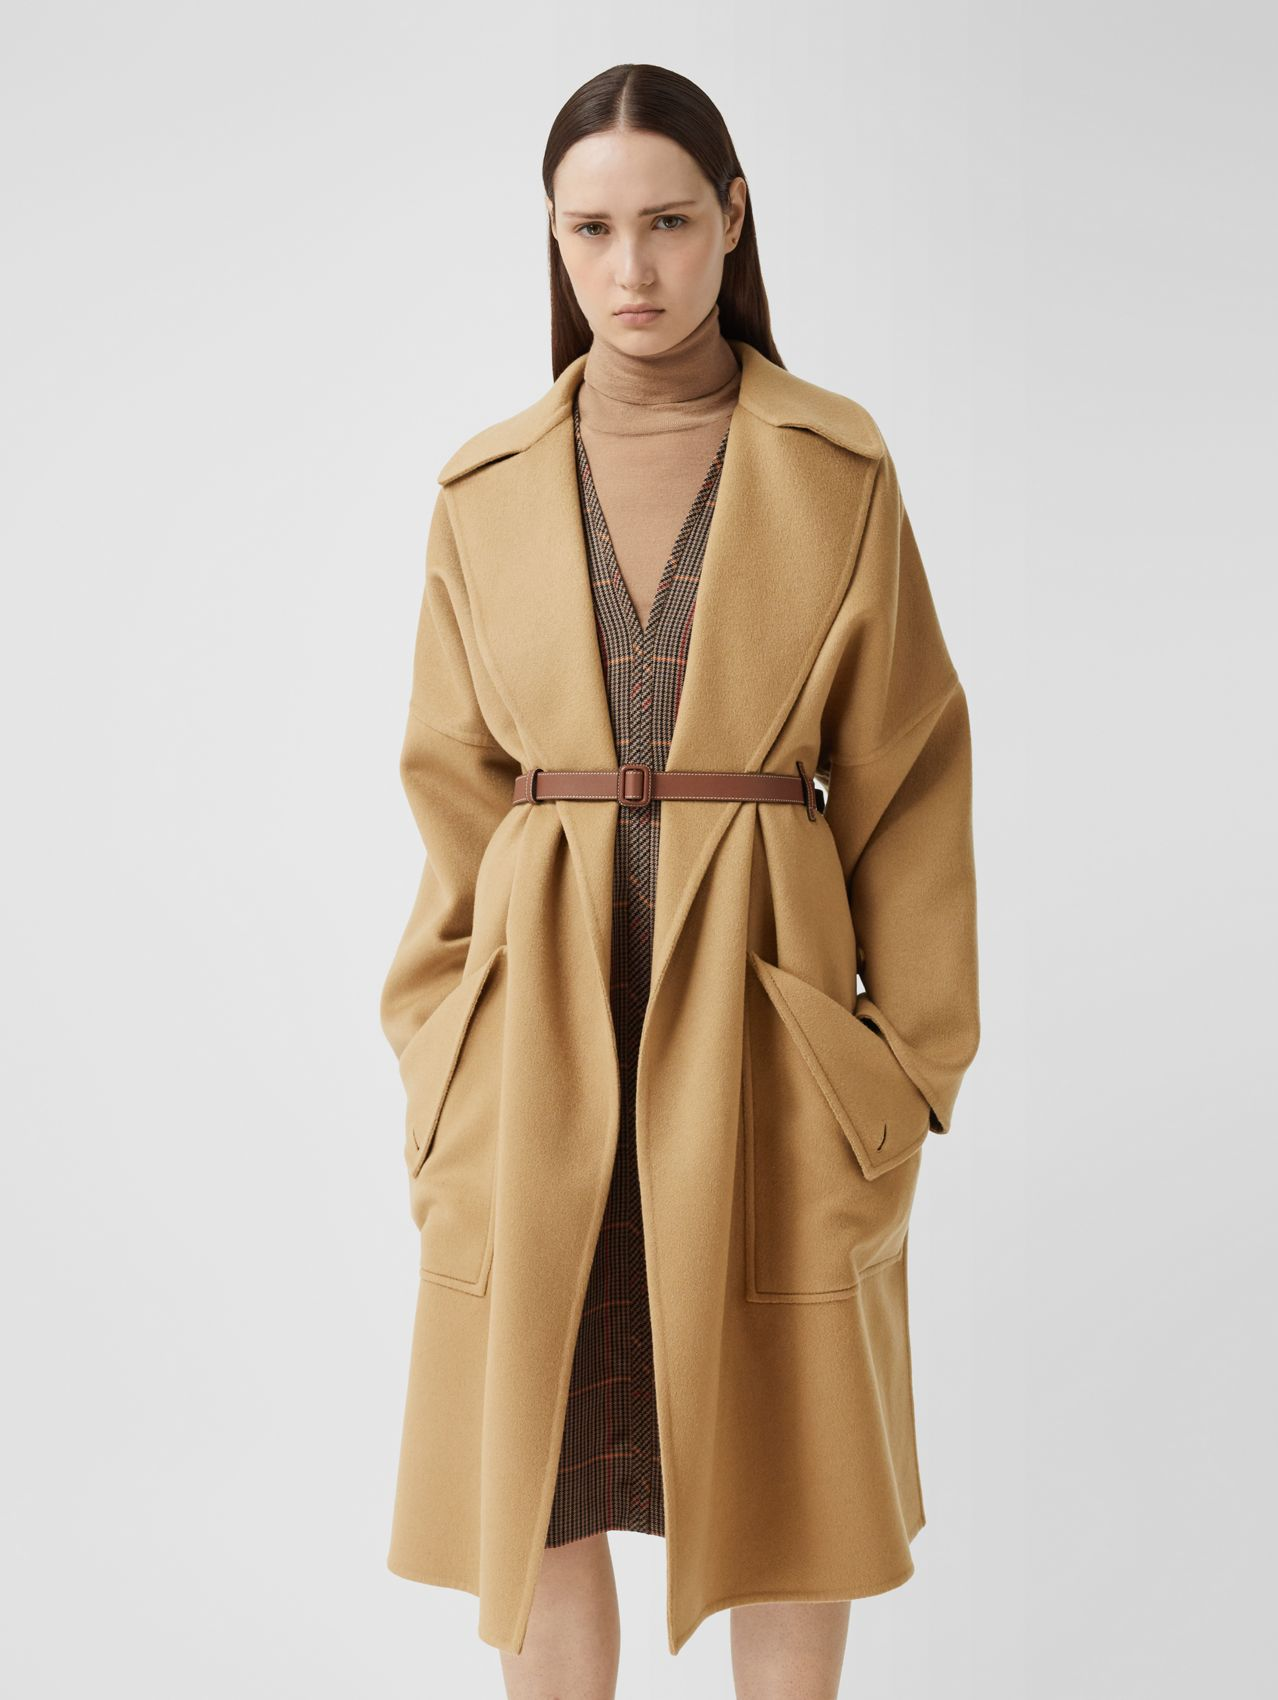 Pocket Detail Double-faced Cashmere Wrap Coat in Camel